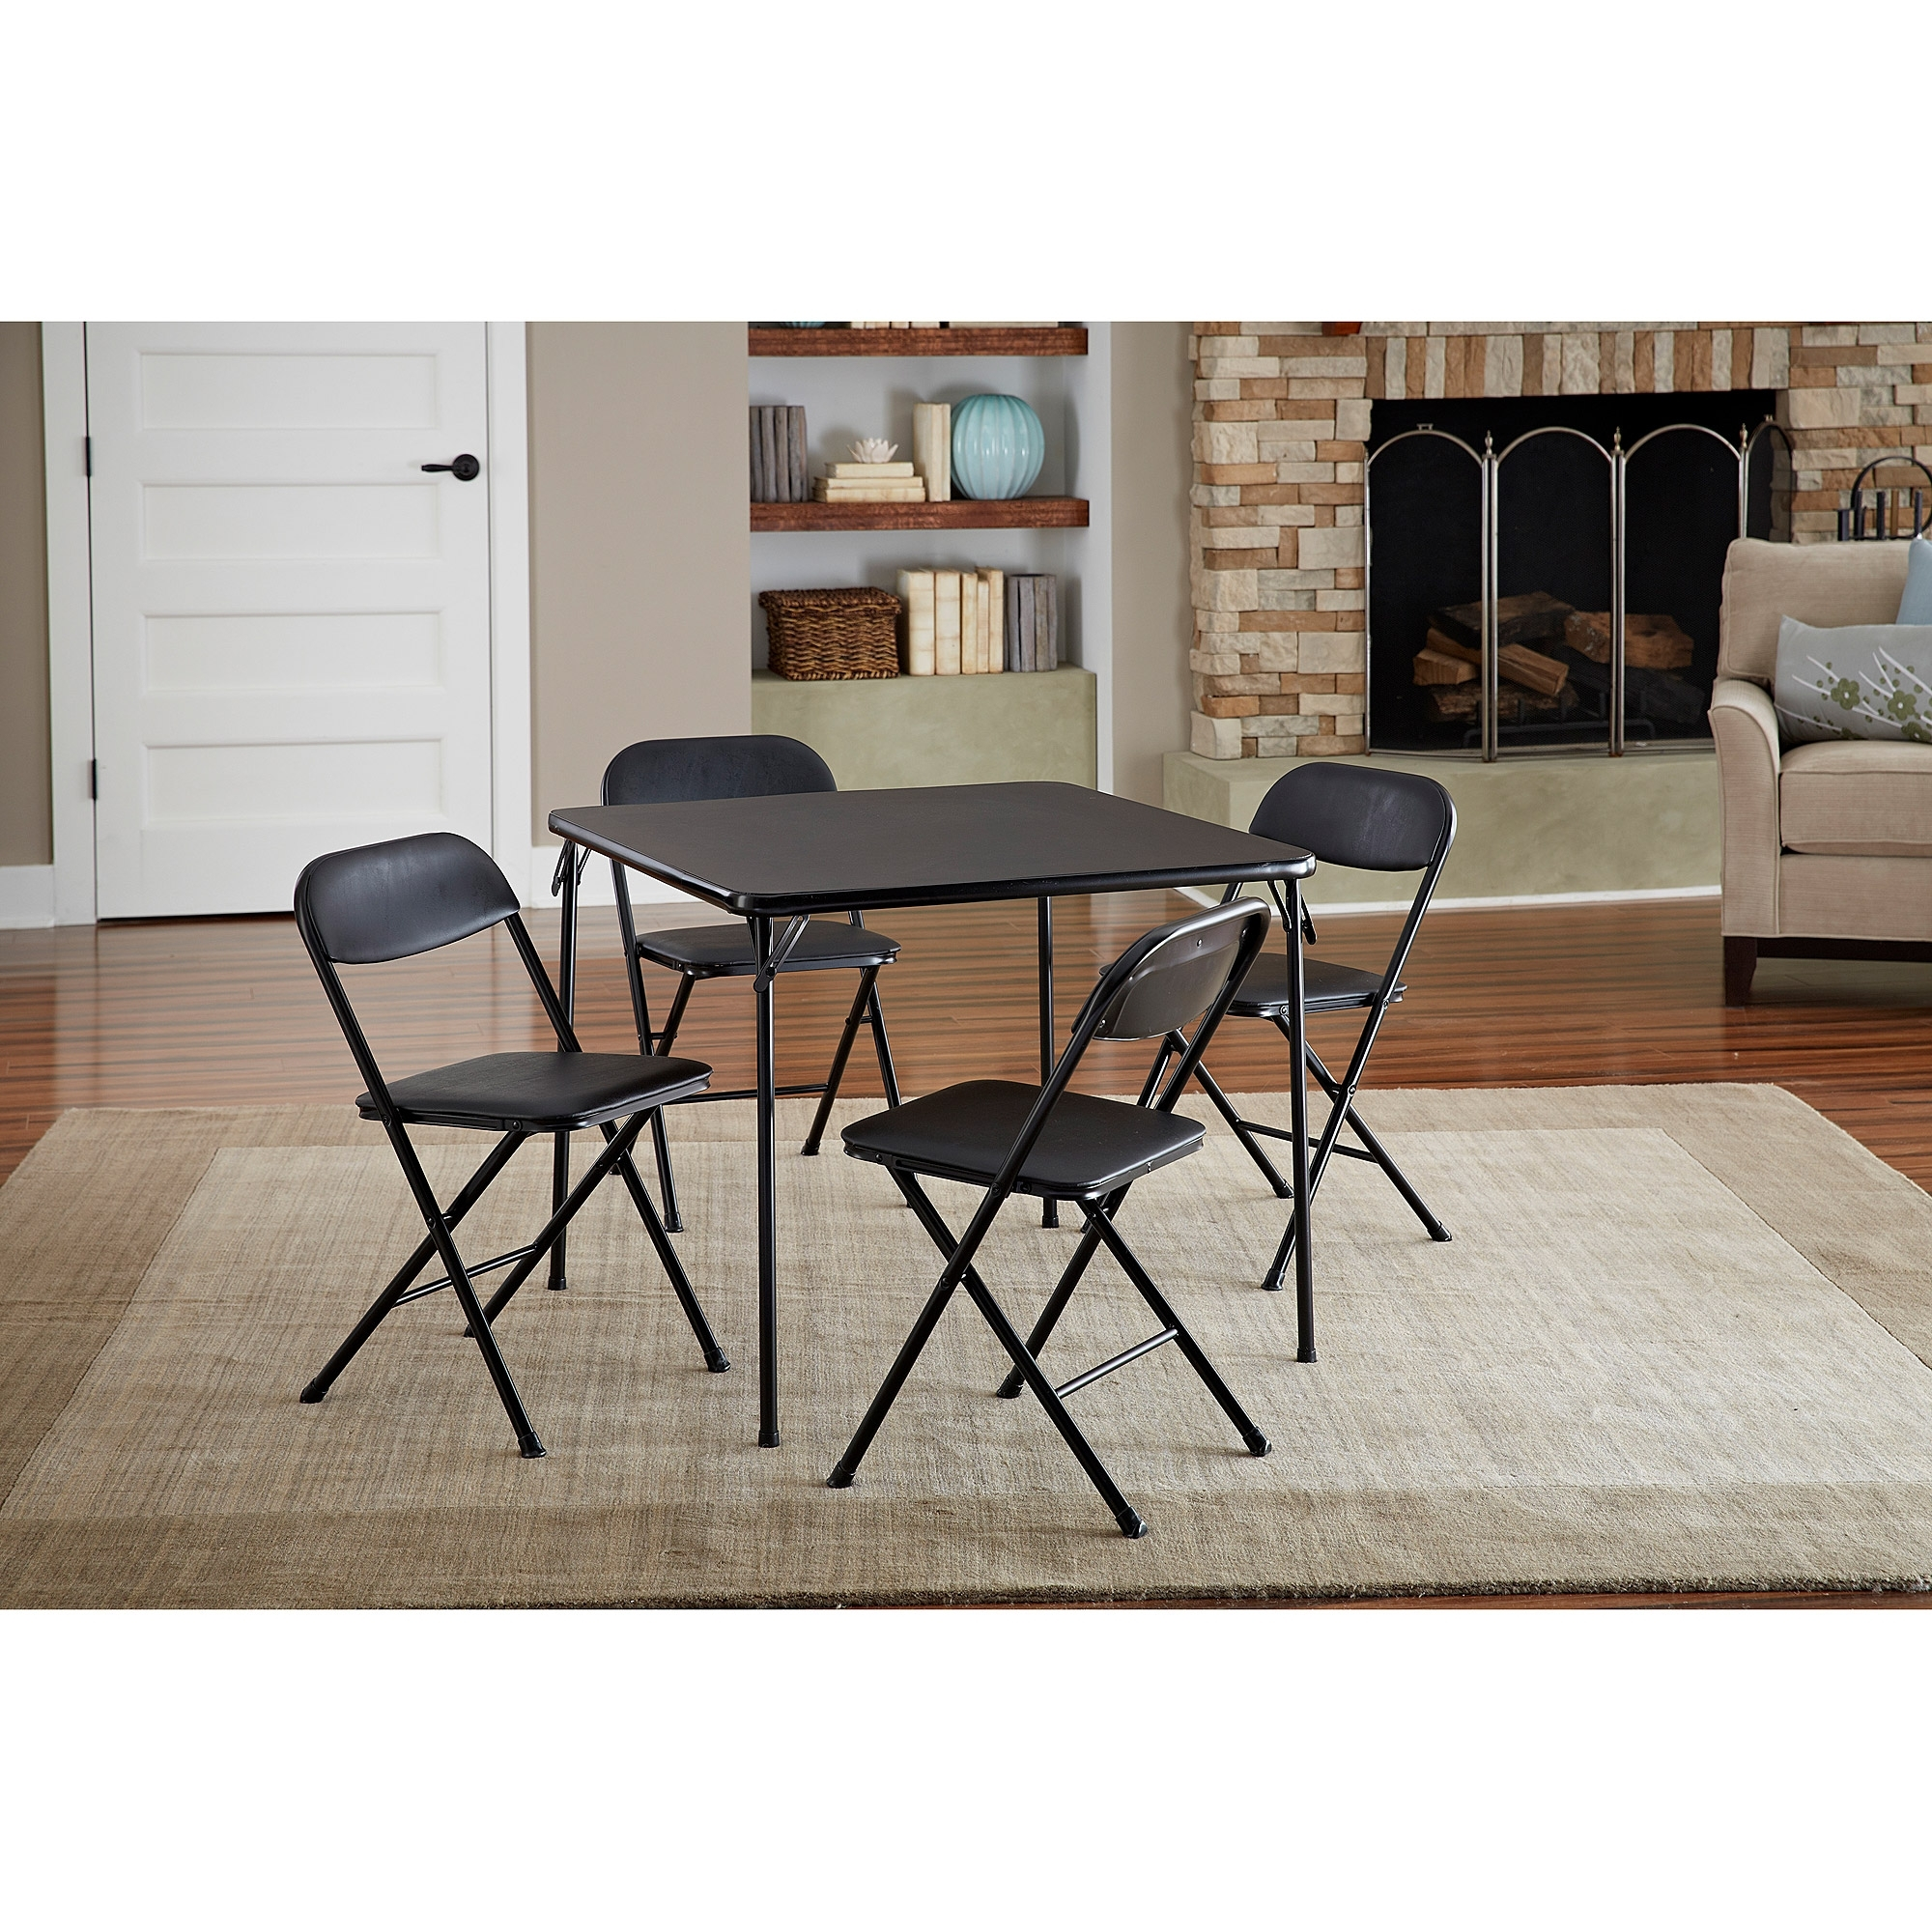 Black Folding Dining Tables And Chairs For Current Cosco 5 Piece Card Table Set, Black – Walmart (View 1 of 25)